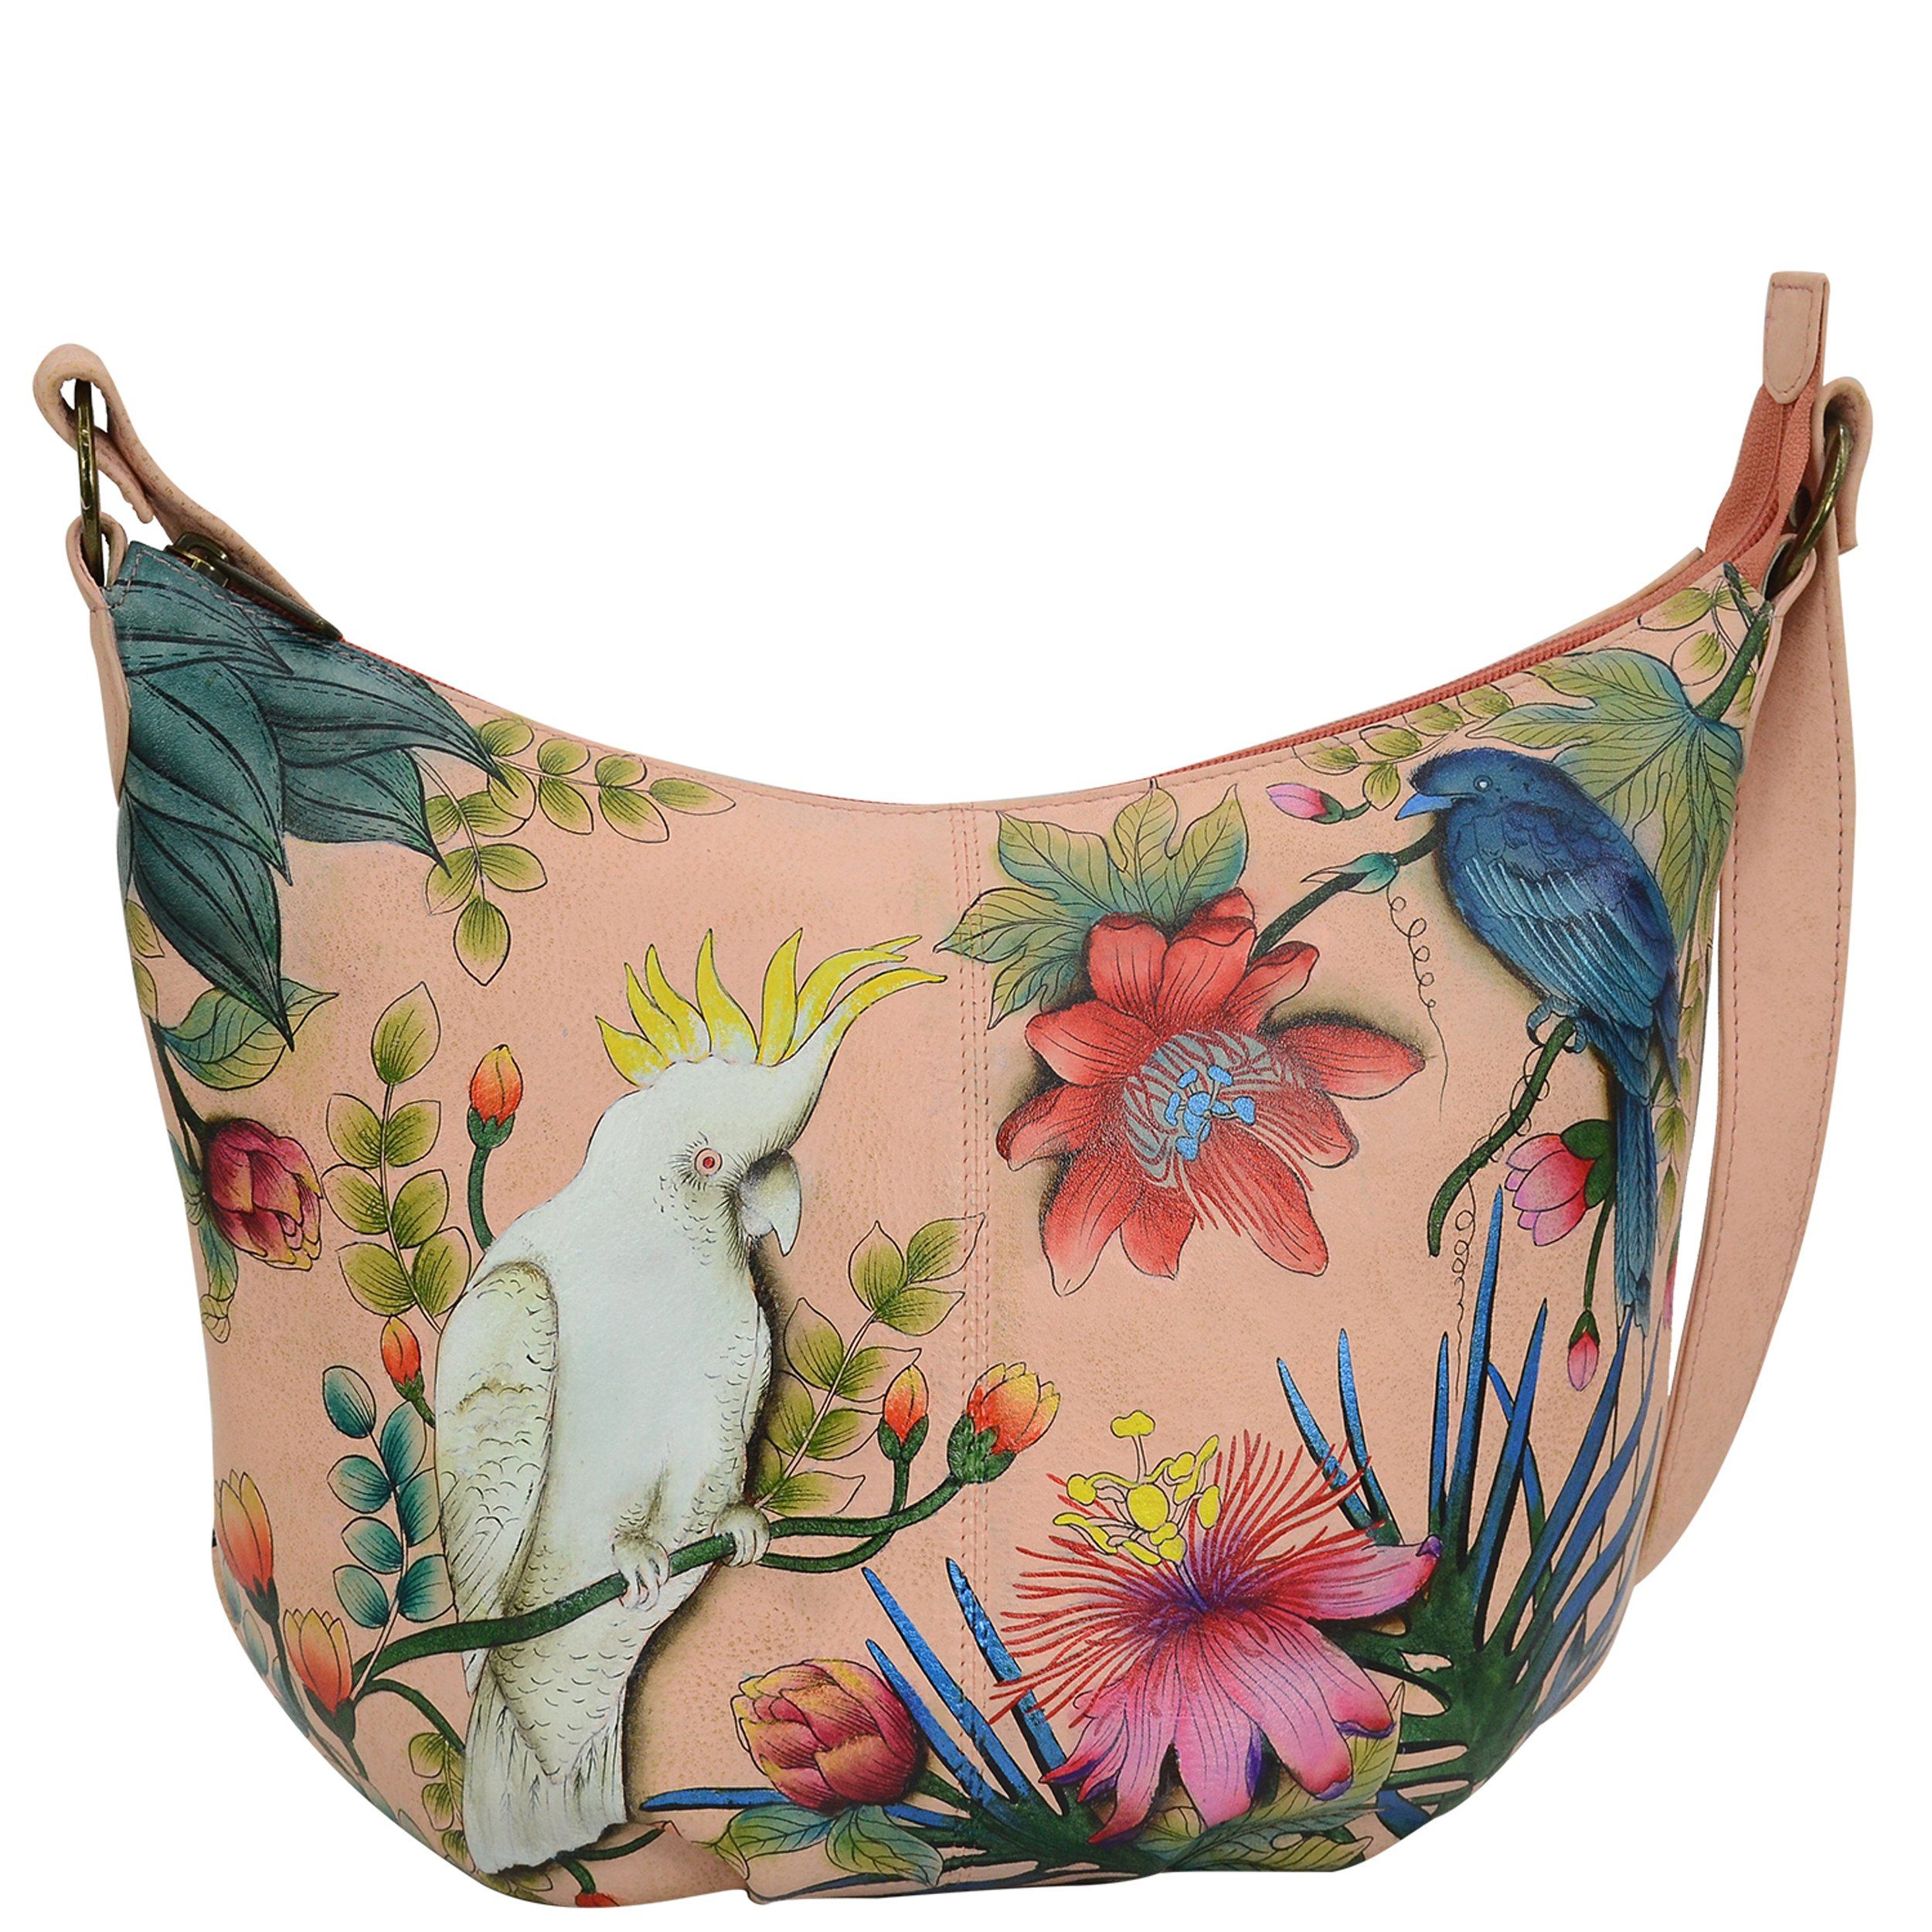 Anuschka Women's Medium Hobo Leather Hand Painted Shoulder Bag, Cockatoo Sunrise